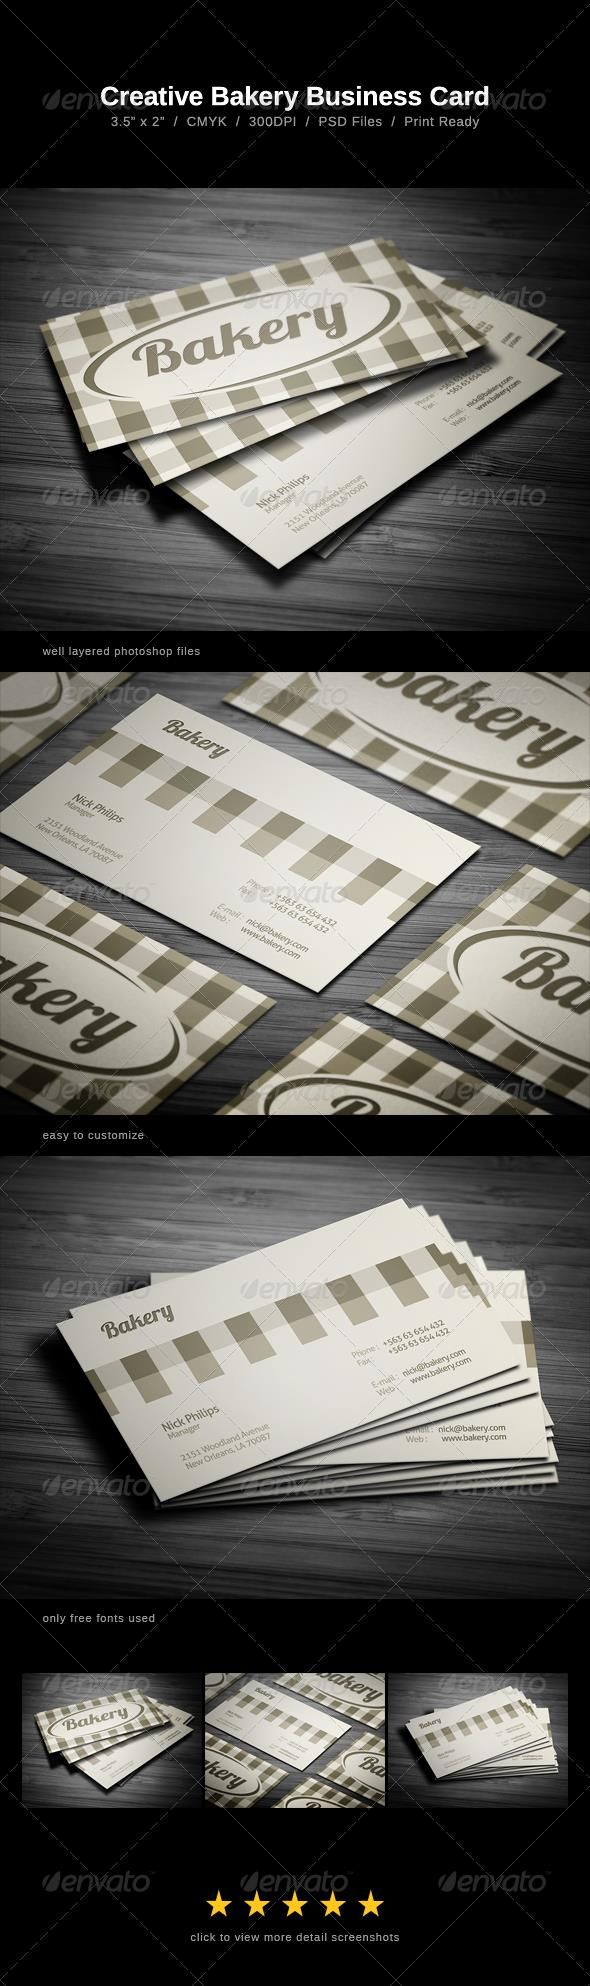 The 25+ best Bakery business cards ideas on Pinterest | Bakery ...